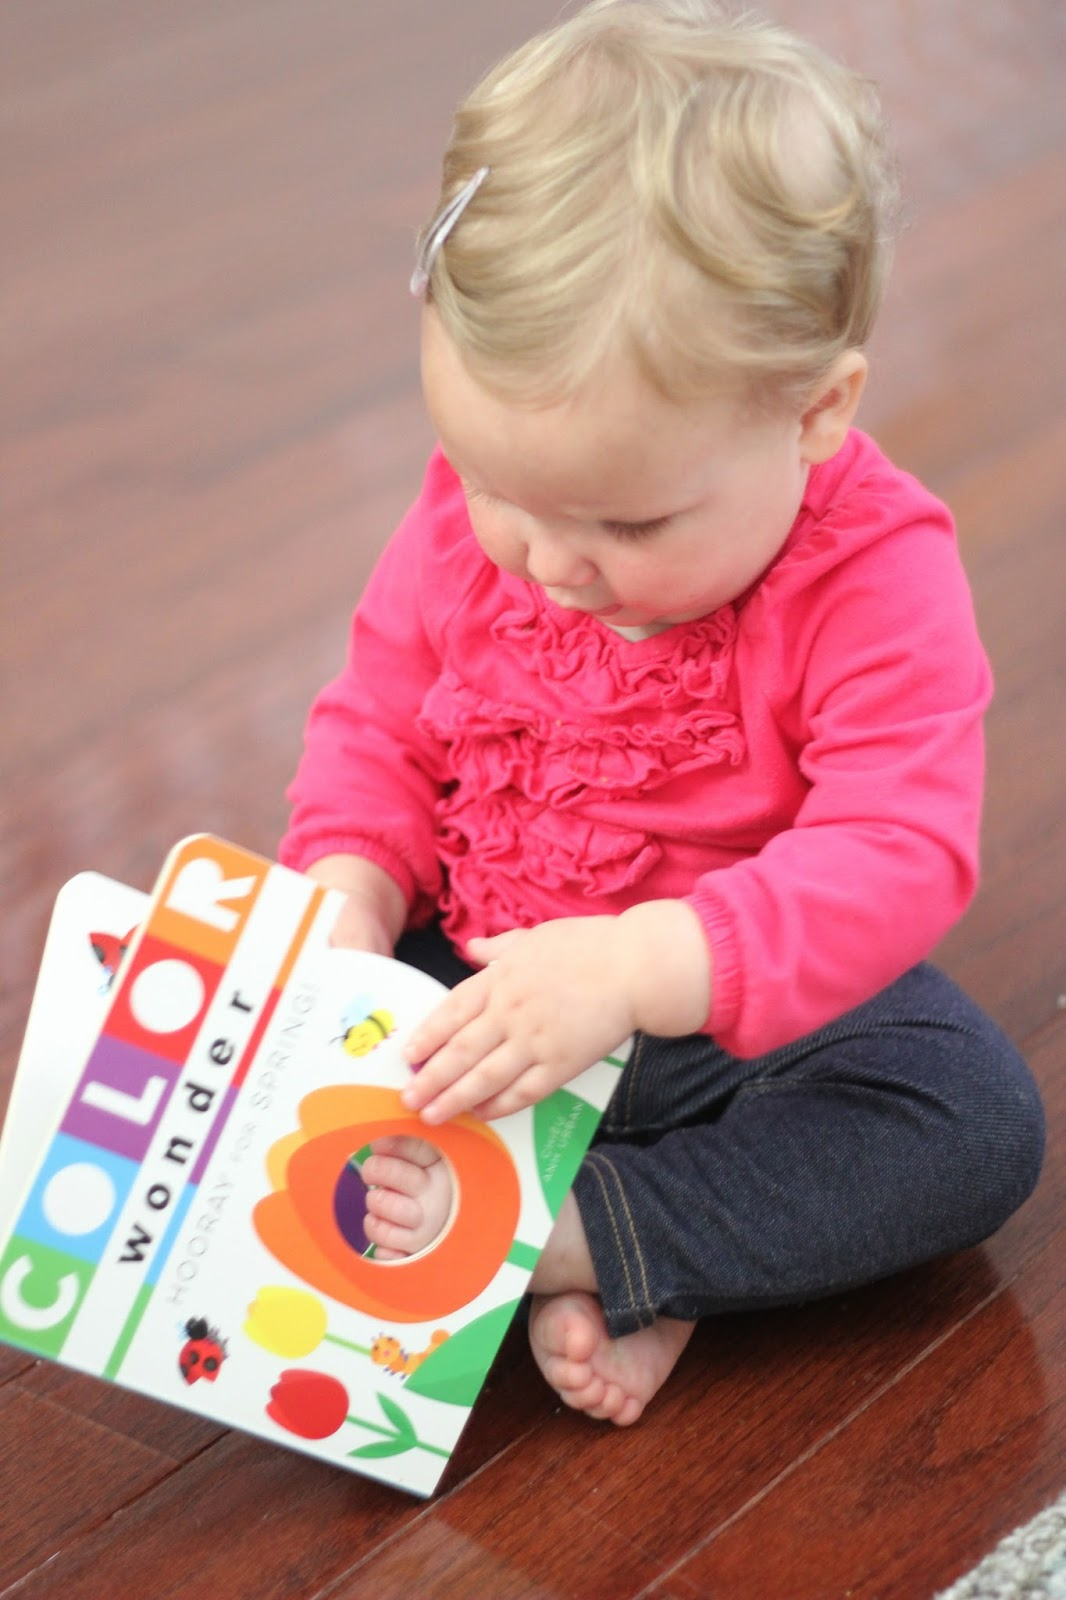 Toddler Approved!: 3 Simple Rainbow Color Activities for Kids